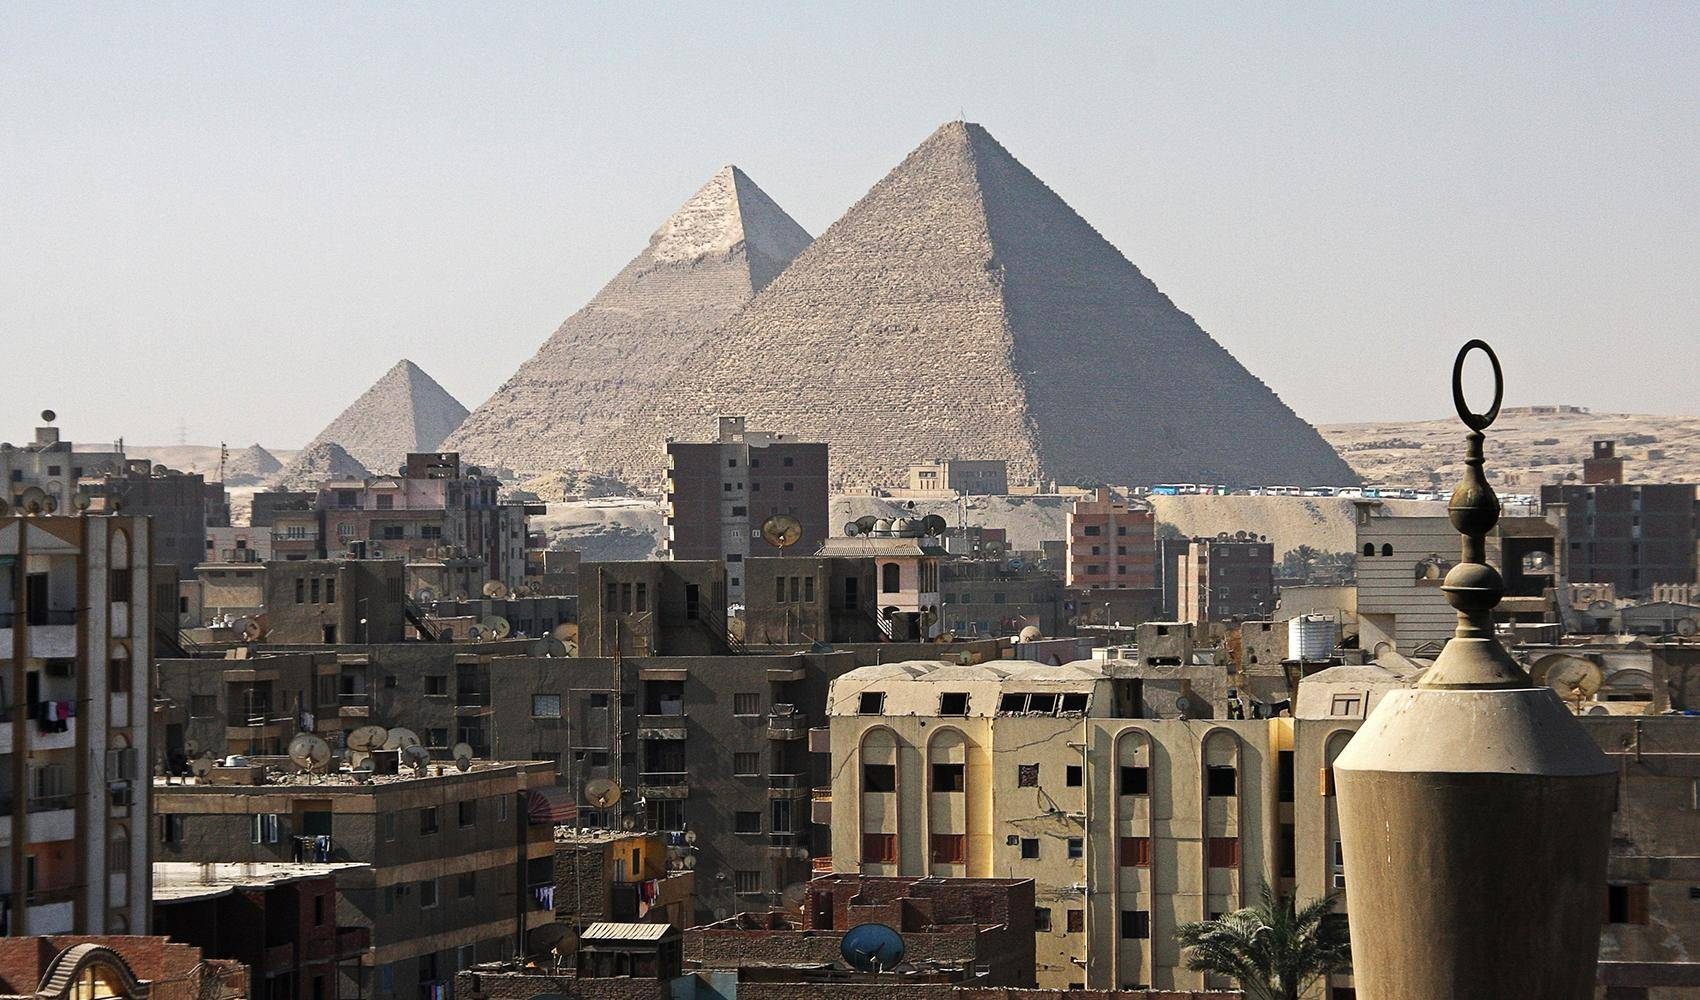 Egypt Travel Deals. Find the Best Deals from Travel Agents in Egypt.  Bookings, travel packages, reviews and advice on hotels, resorts, flights, vacation rentals, commentary, and lifestyle articles directed at Egypt.